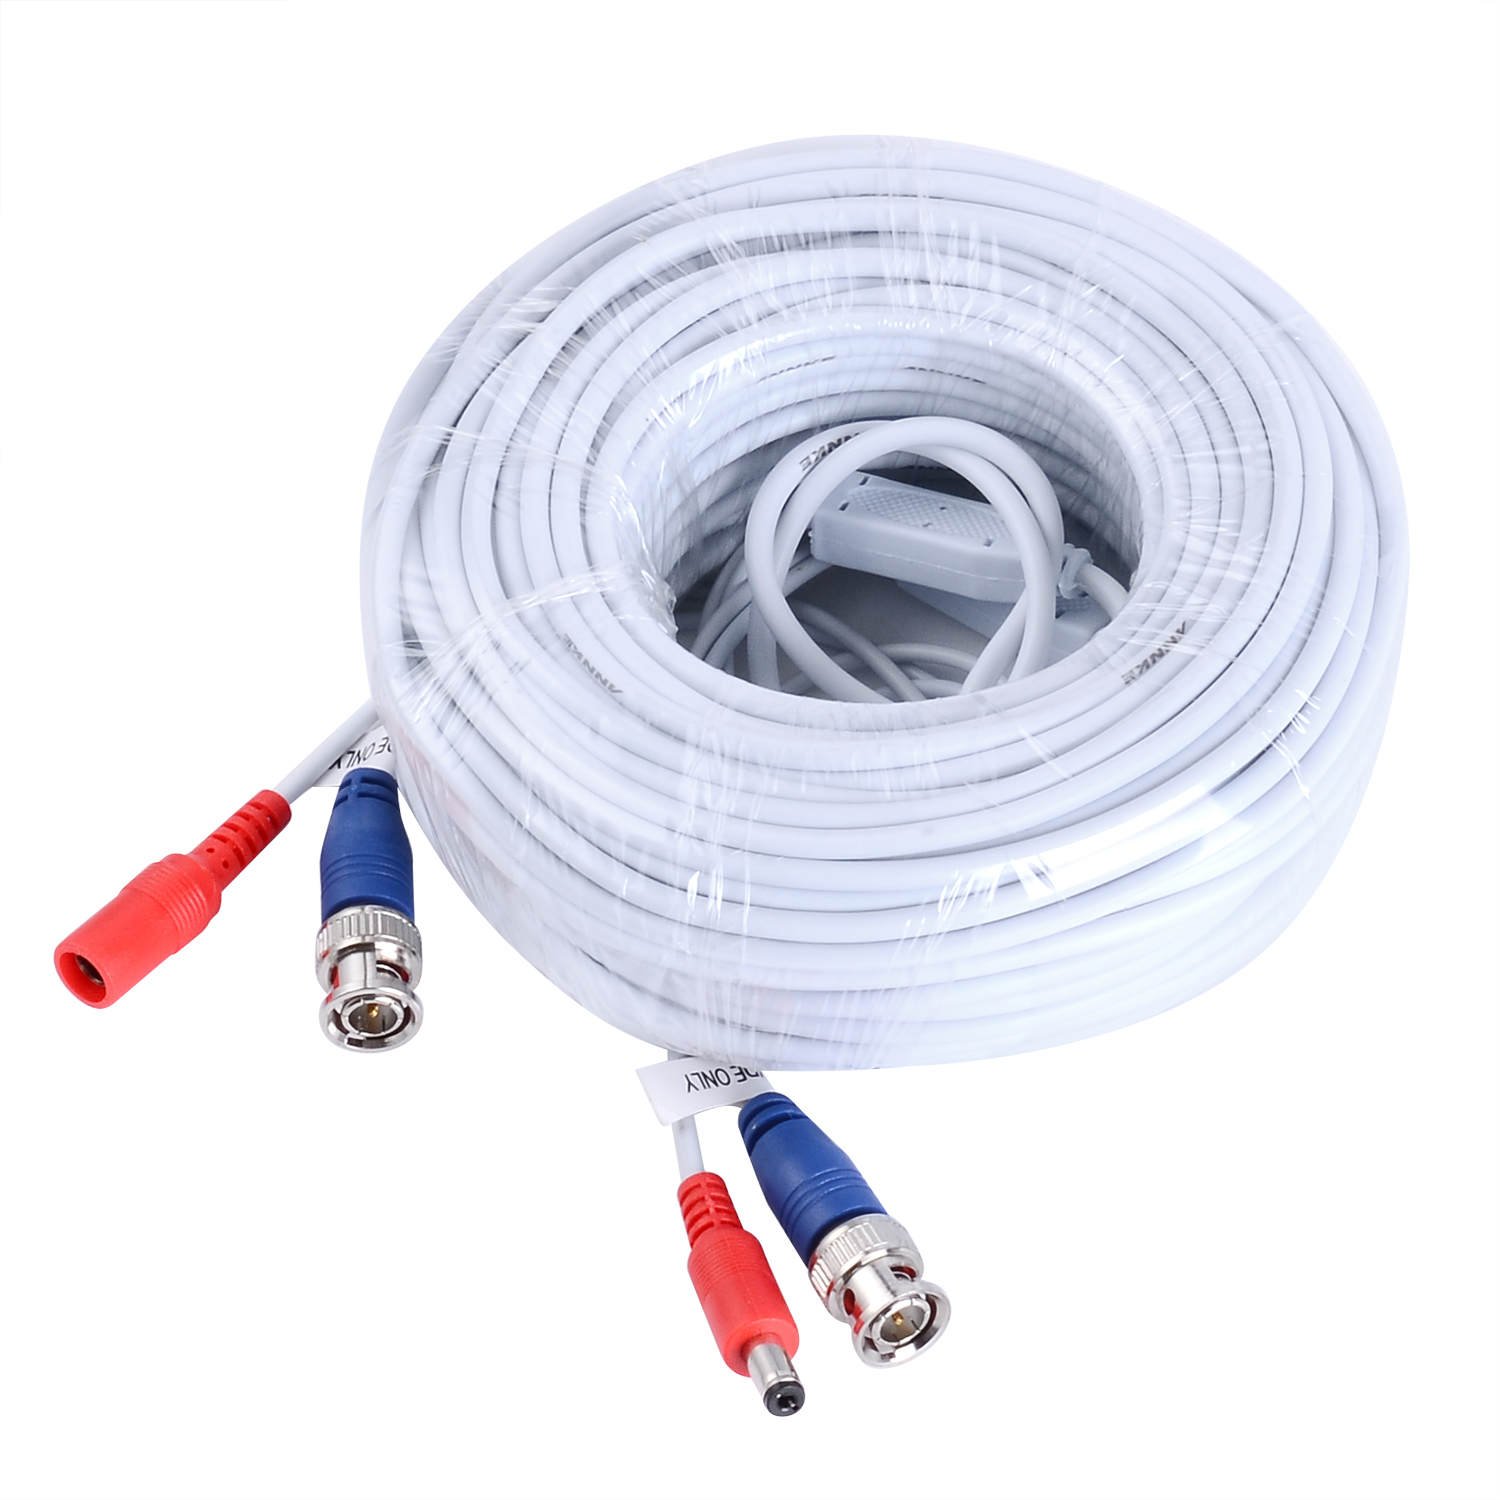 Camera Cable With Power : Annke ft white m bnc video power cable extension for